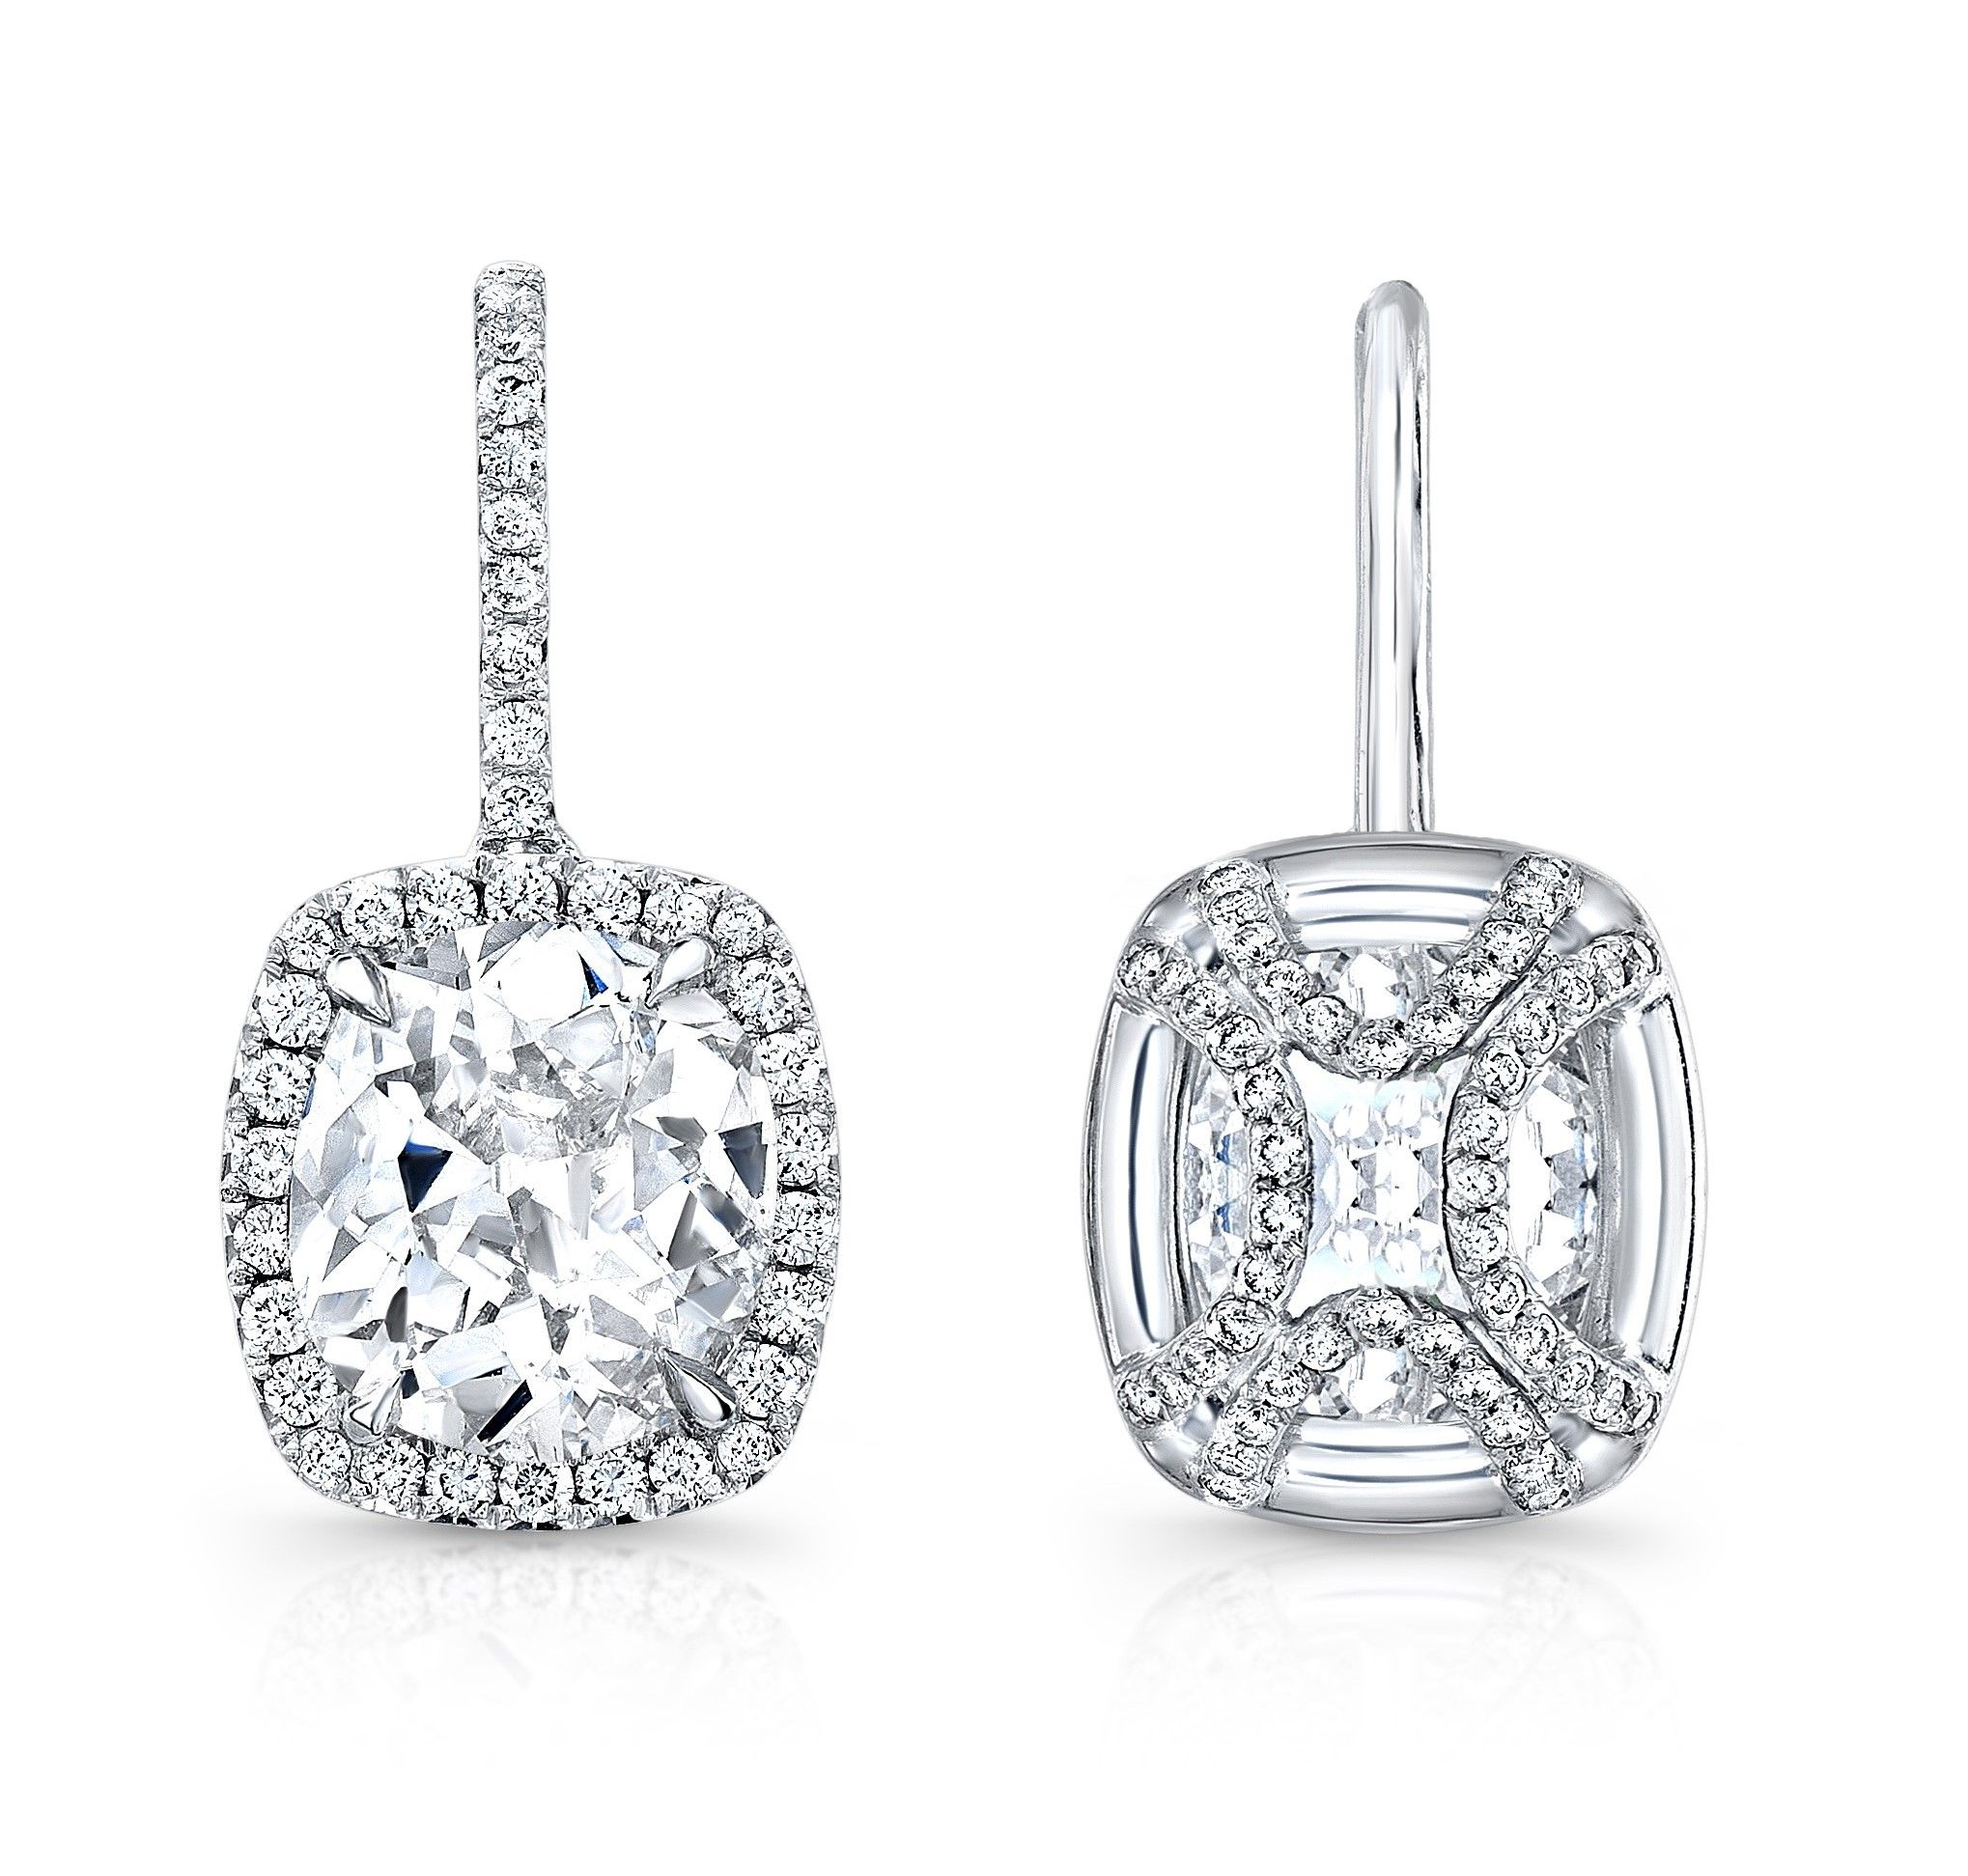 fetheray cut antique vintage diamond stud studs blingtastic products earrings earring hand